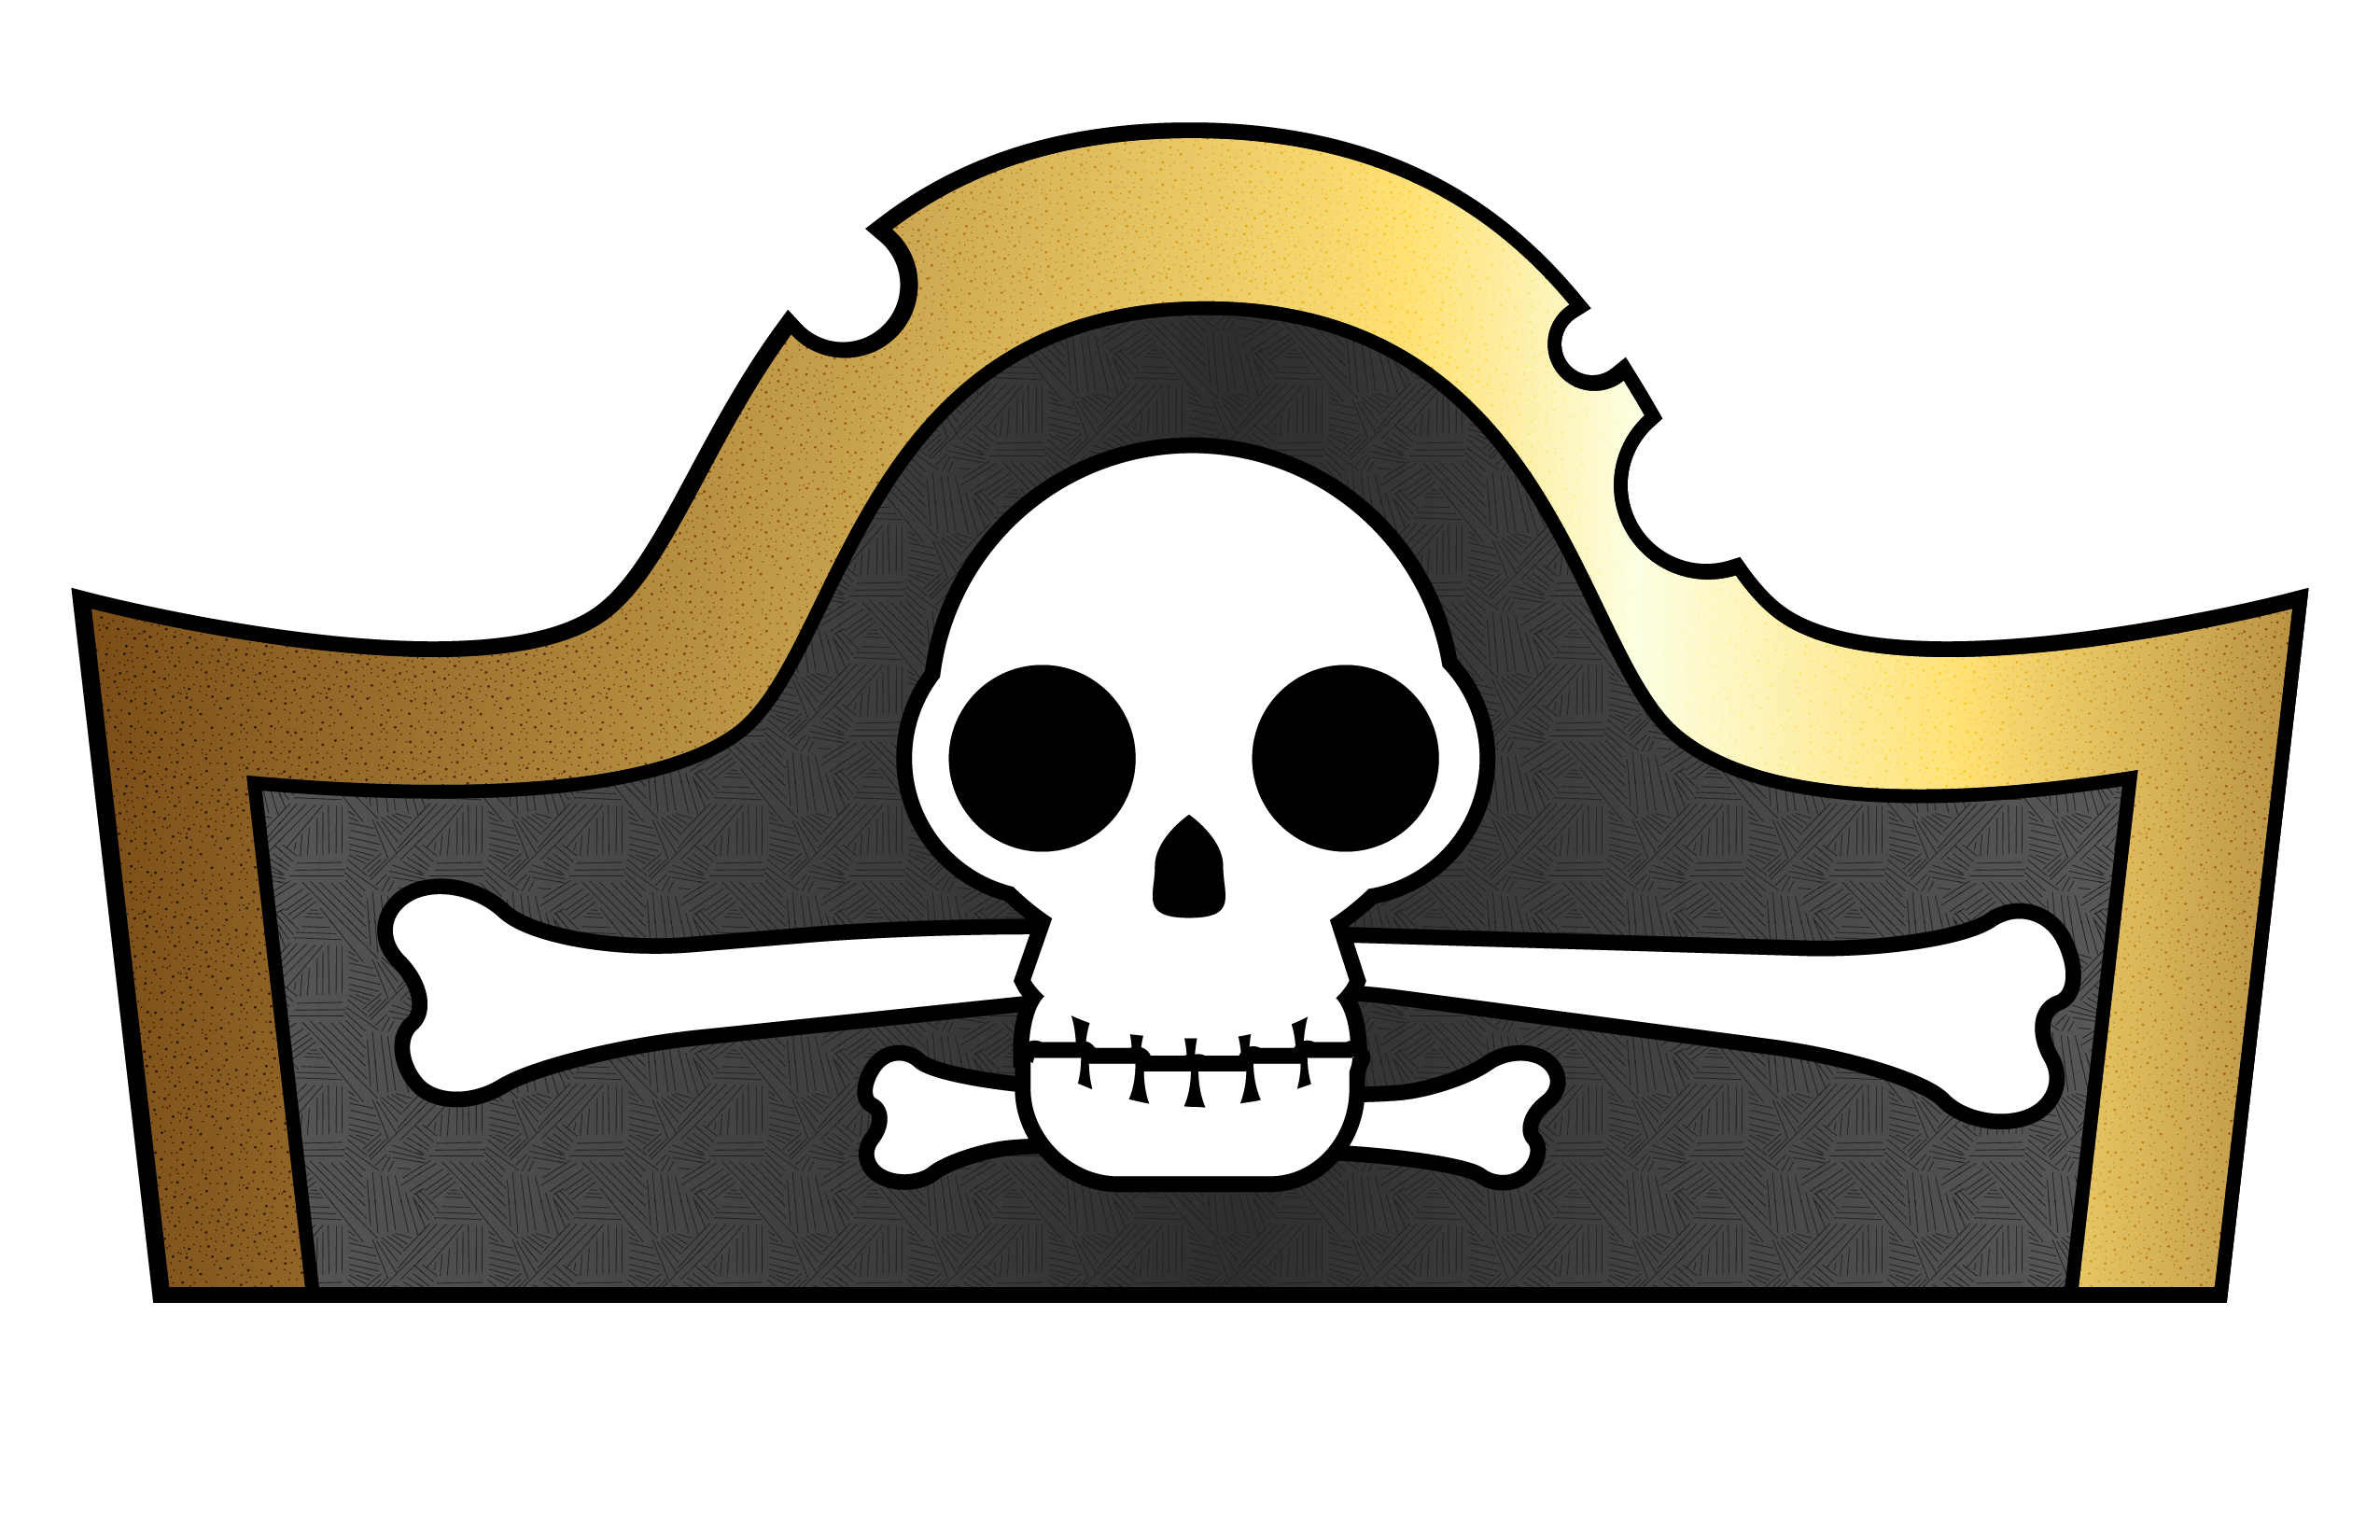 Hats drawing kid. Pirate hat template for